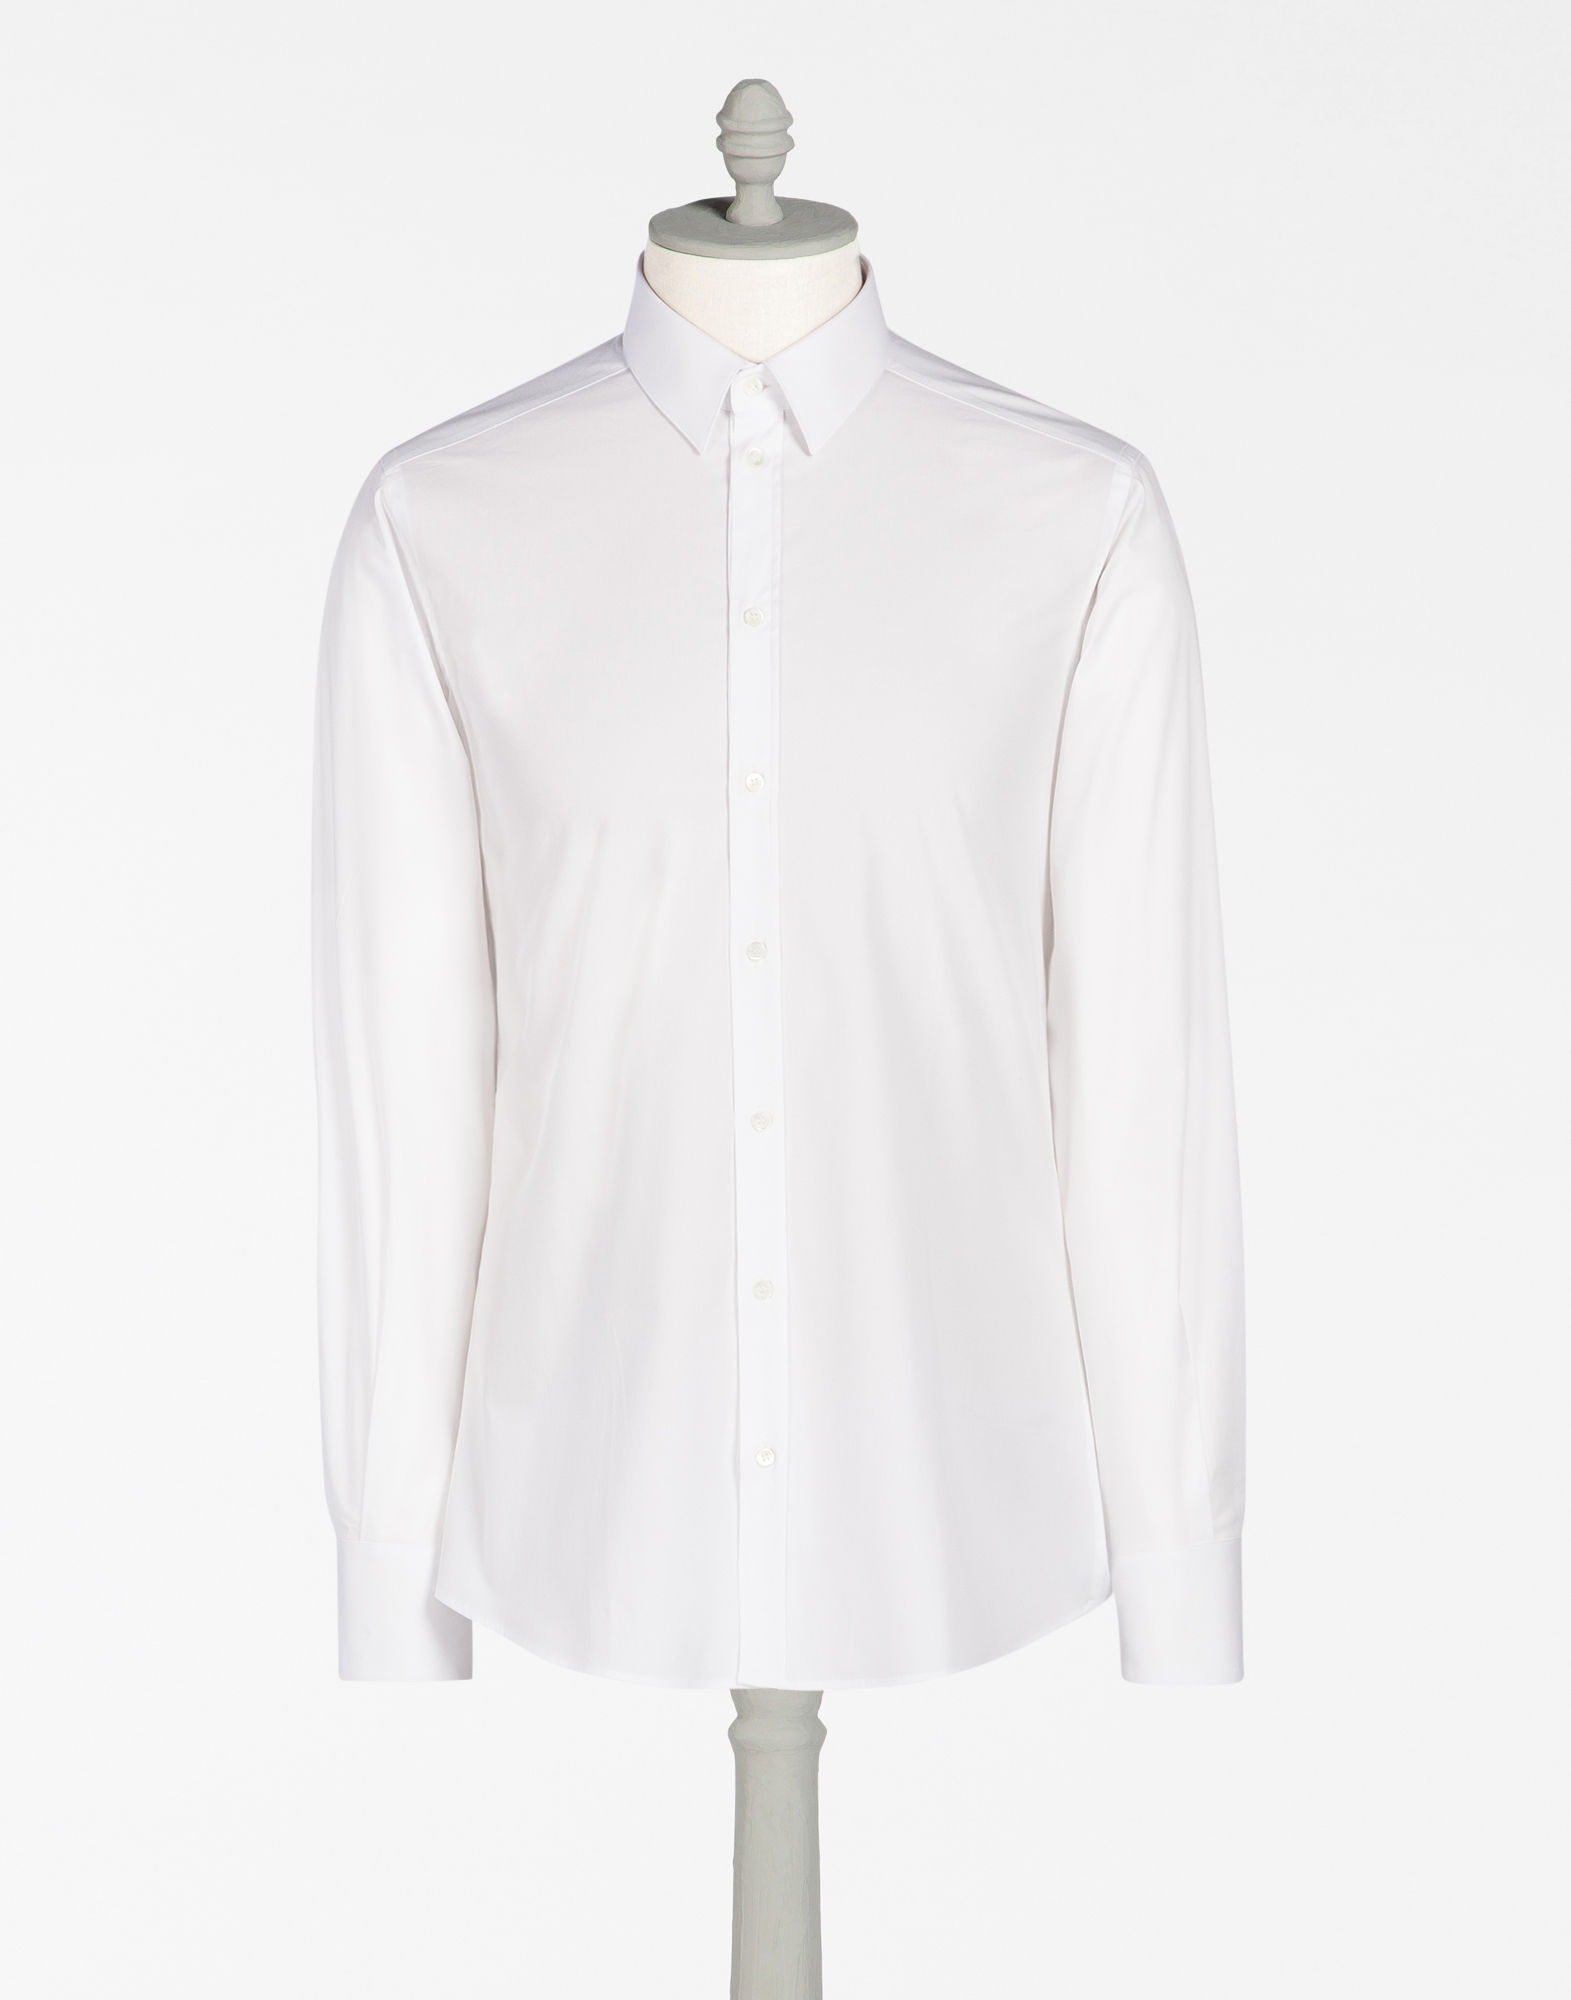 DOLCE & GABBANA Dolce And Gabbana White Stud Collar Shirt